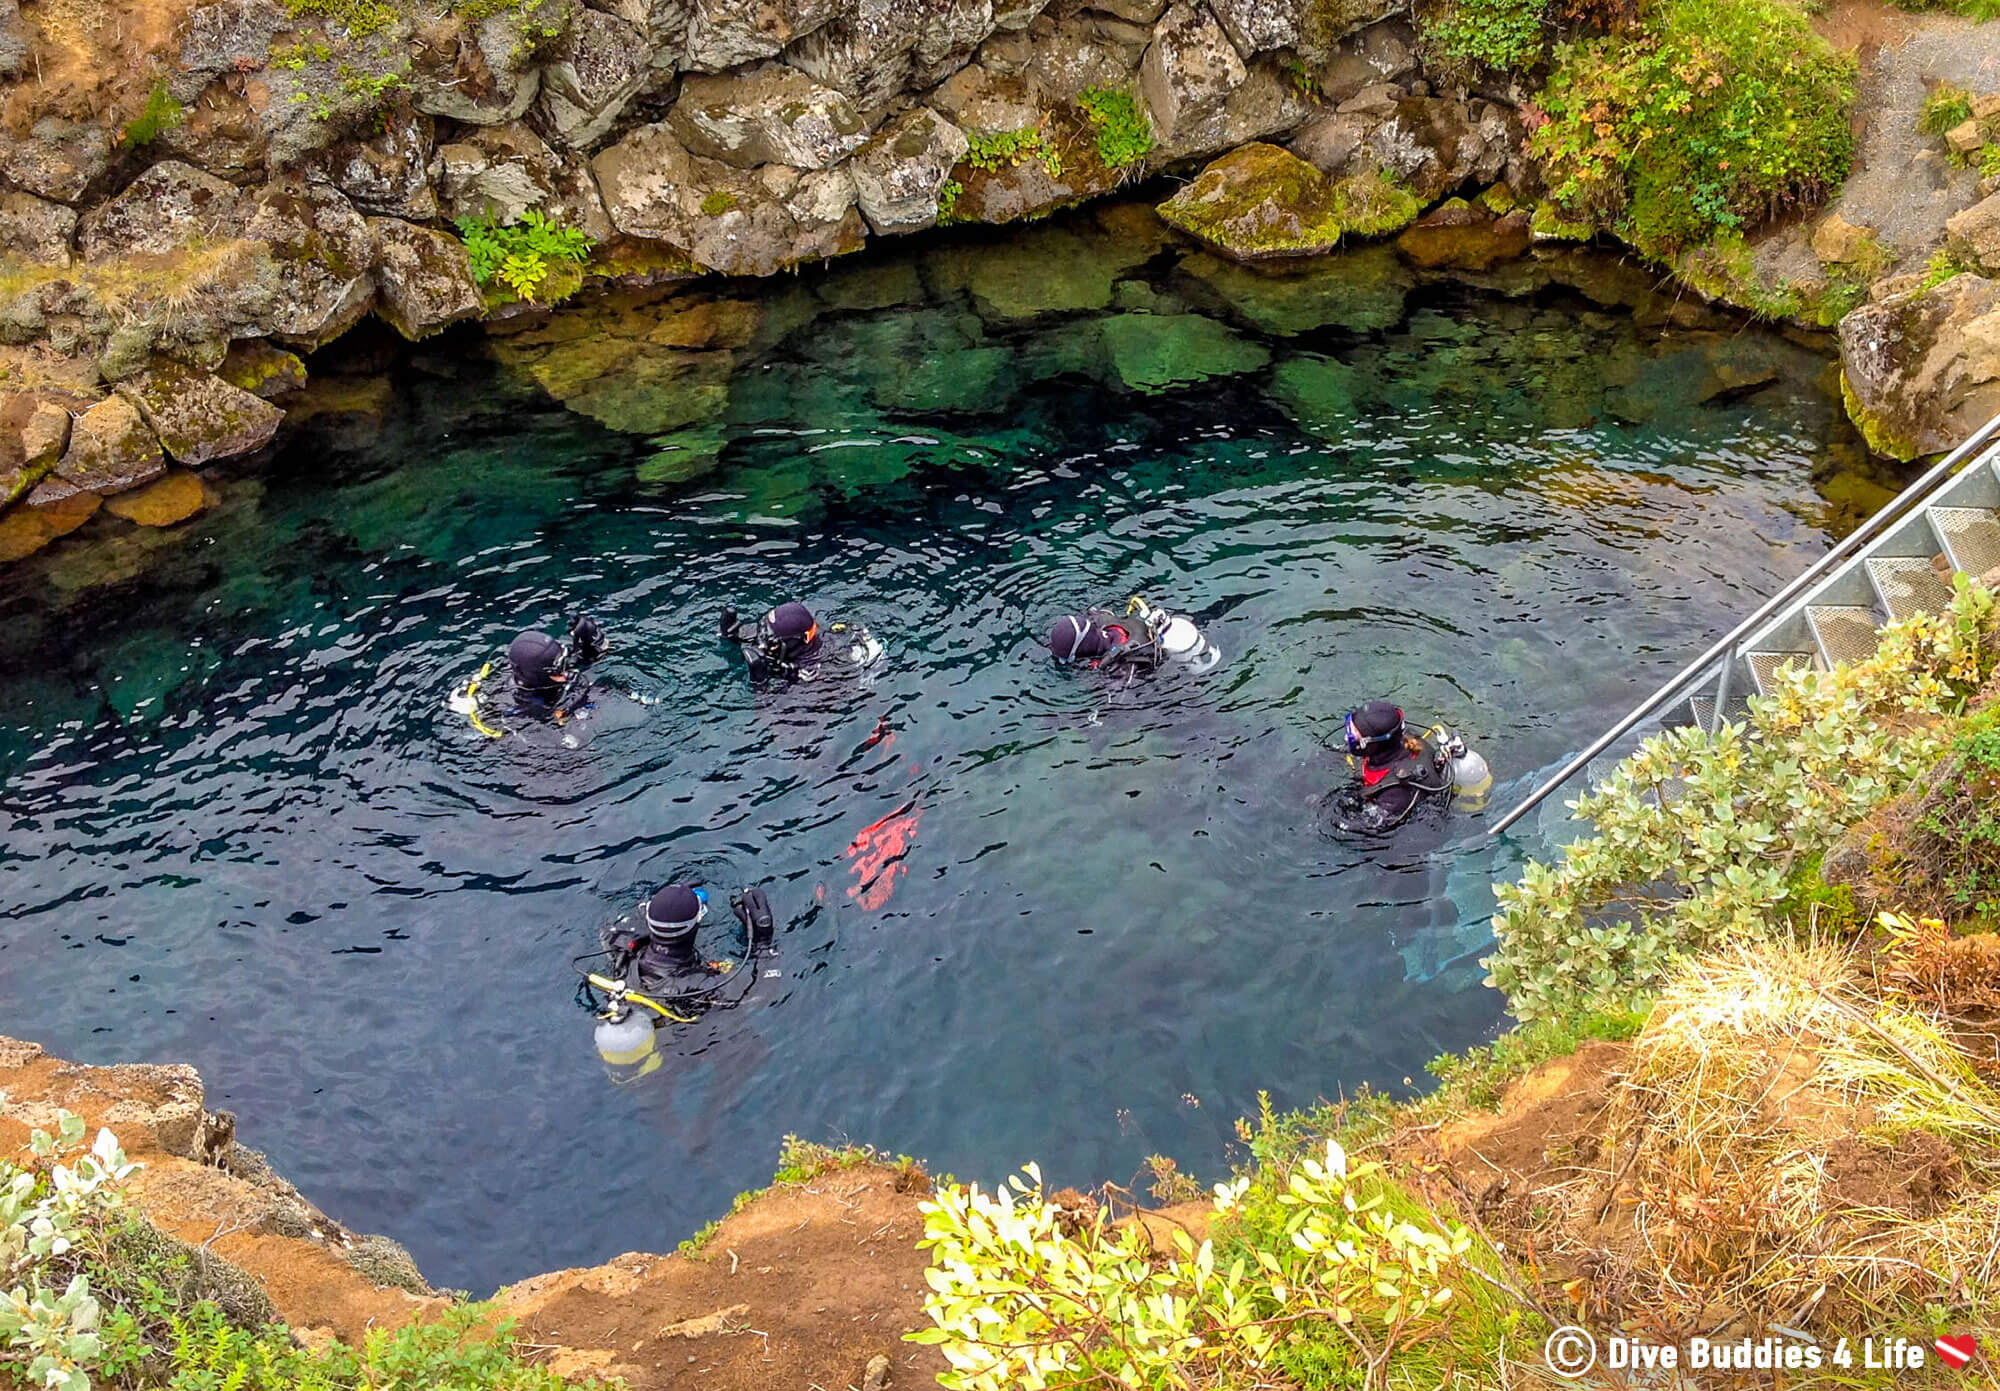 The Dive Group Submerging Themselves In The Clear Water Of The Silfra Crack